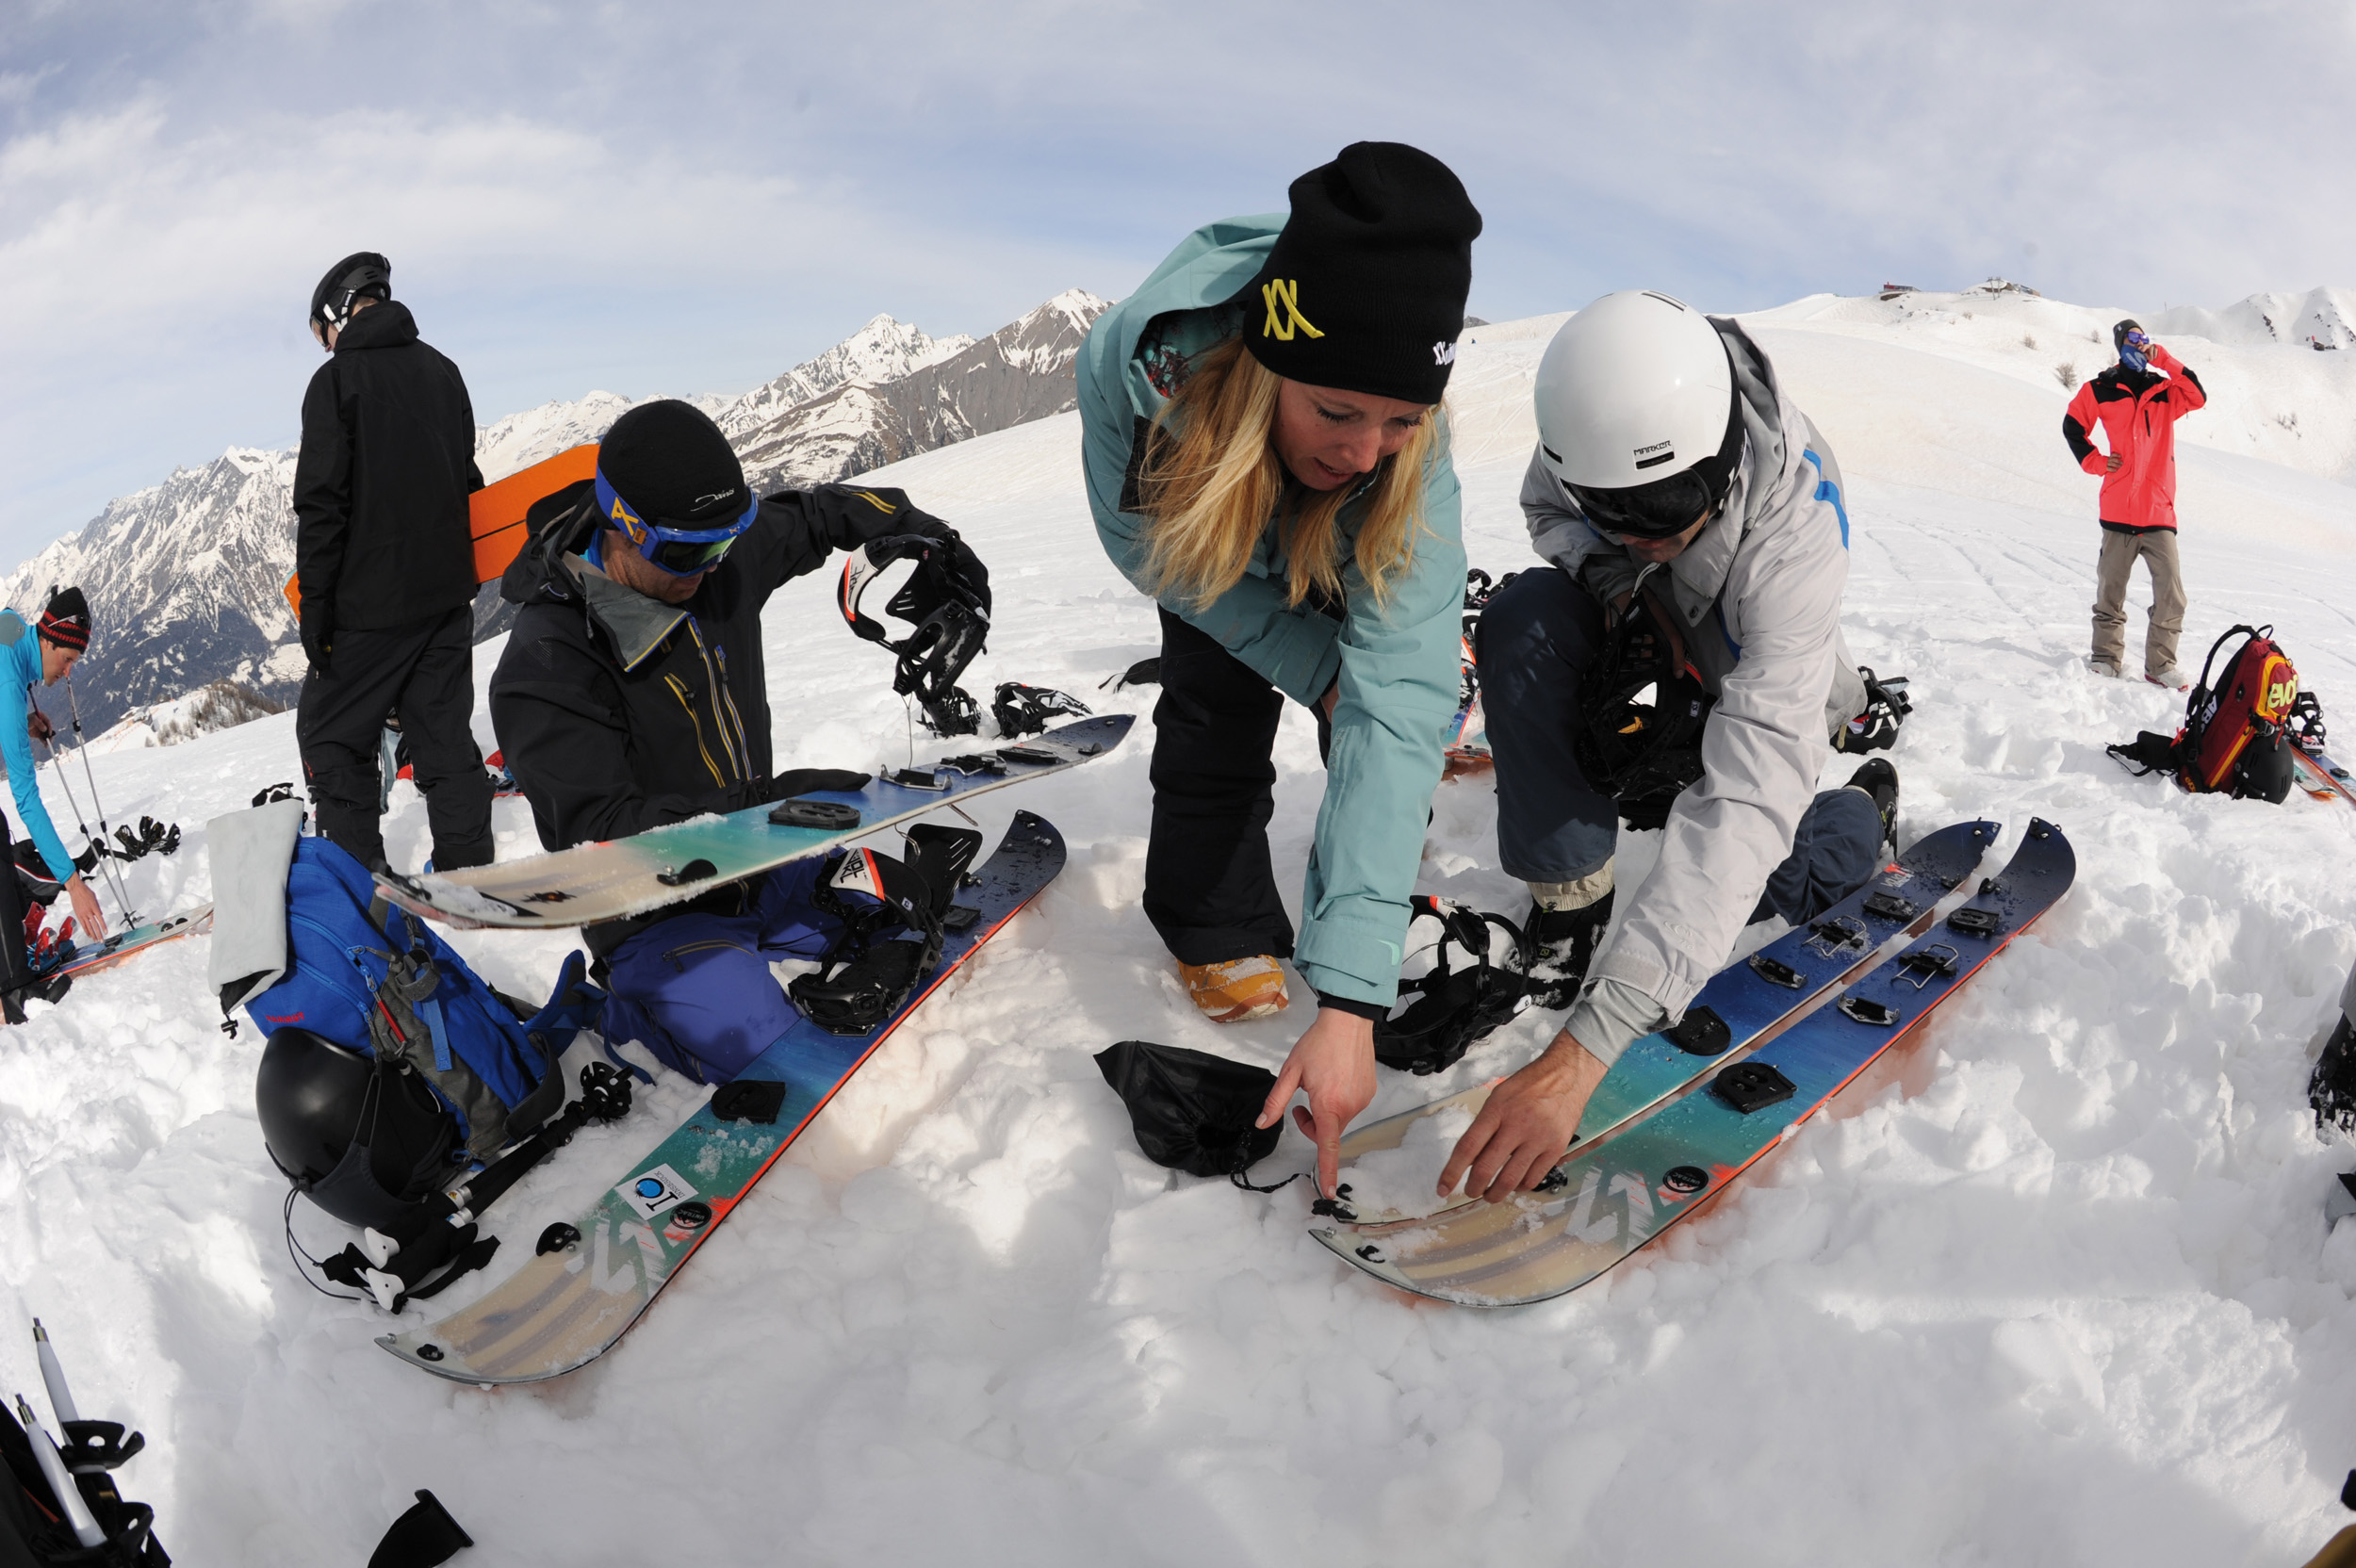 SPLITBOARD: FEEL THE MOUNTAIN WITH YOUR SNOWBOARD